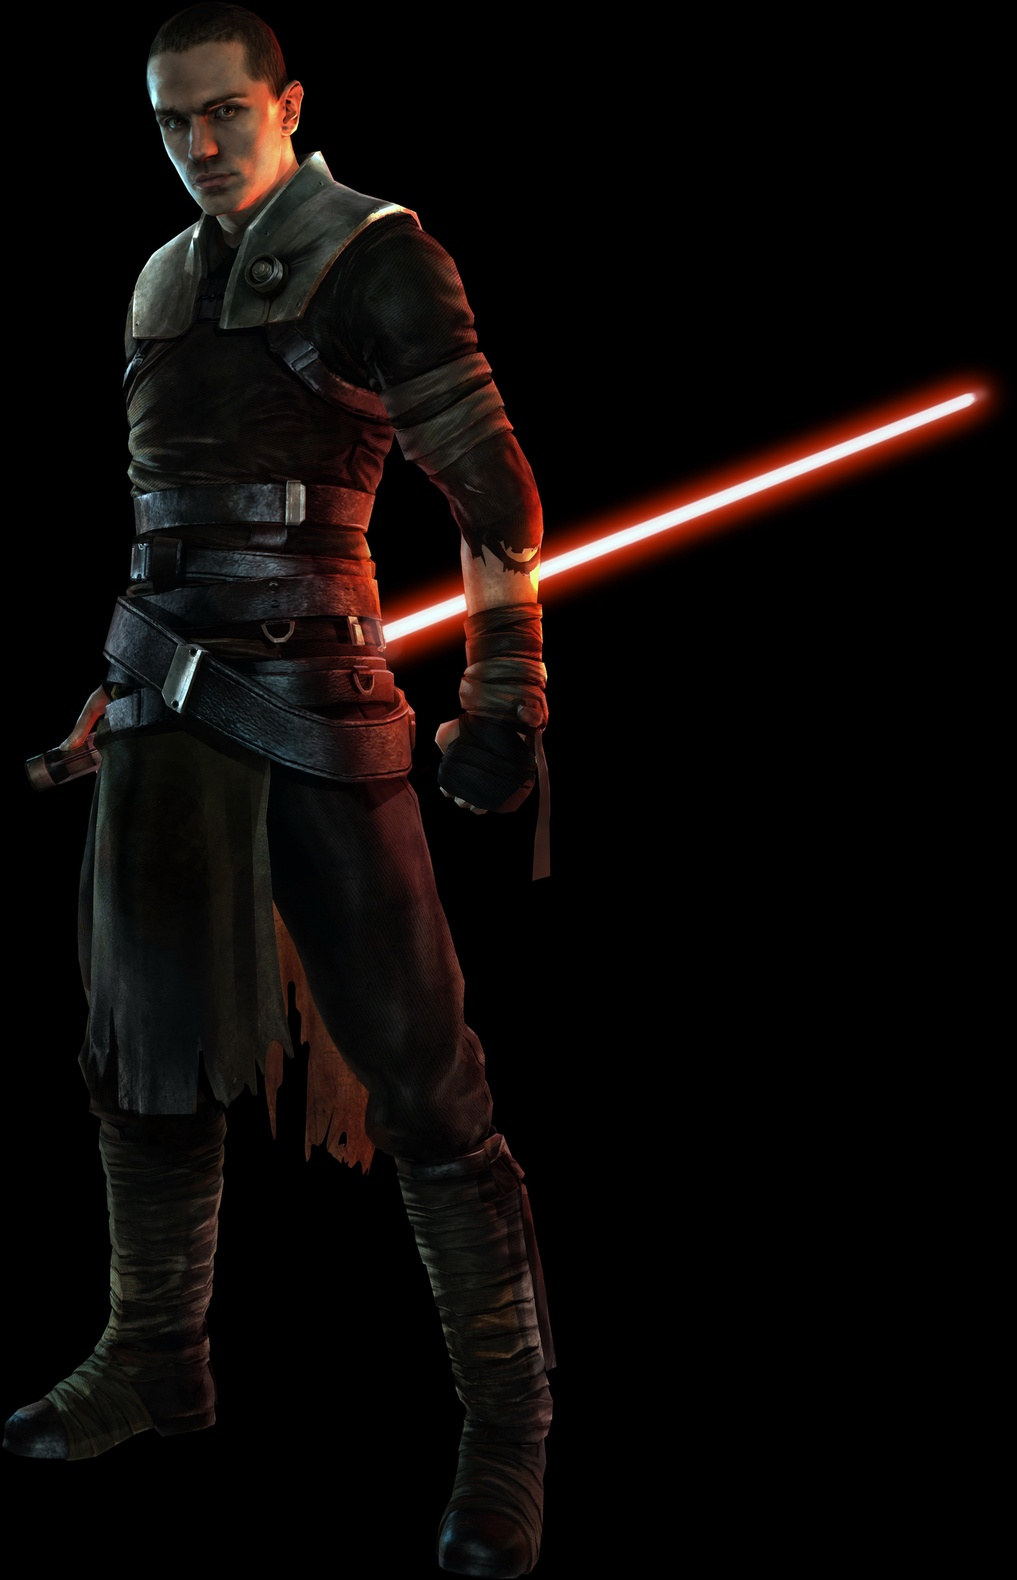 STARKILLER  (Darth Vaders secret apprentice)